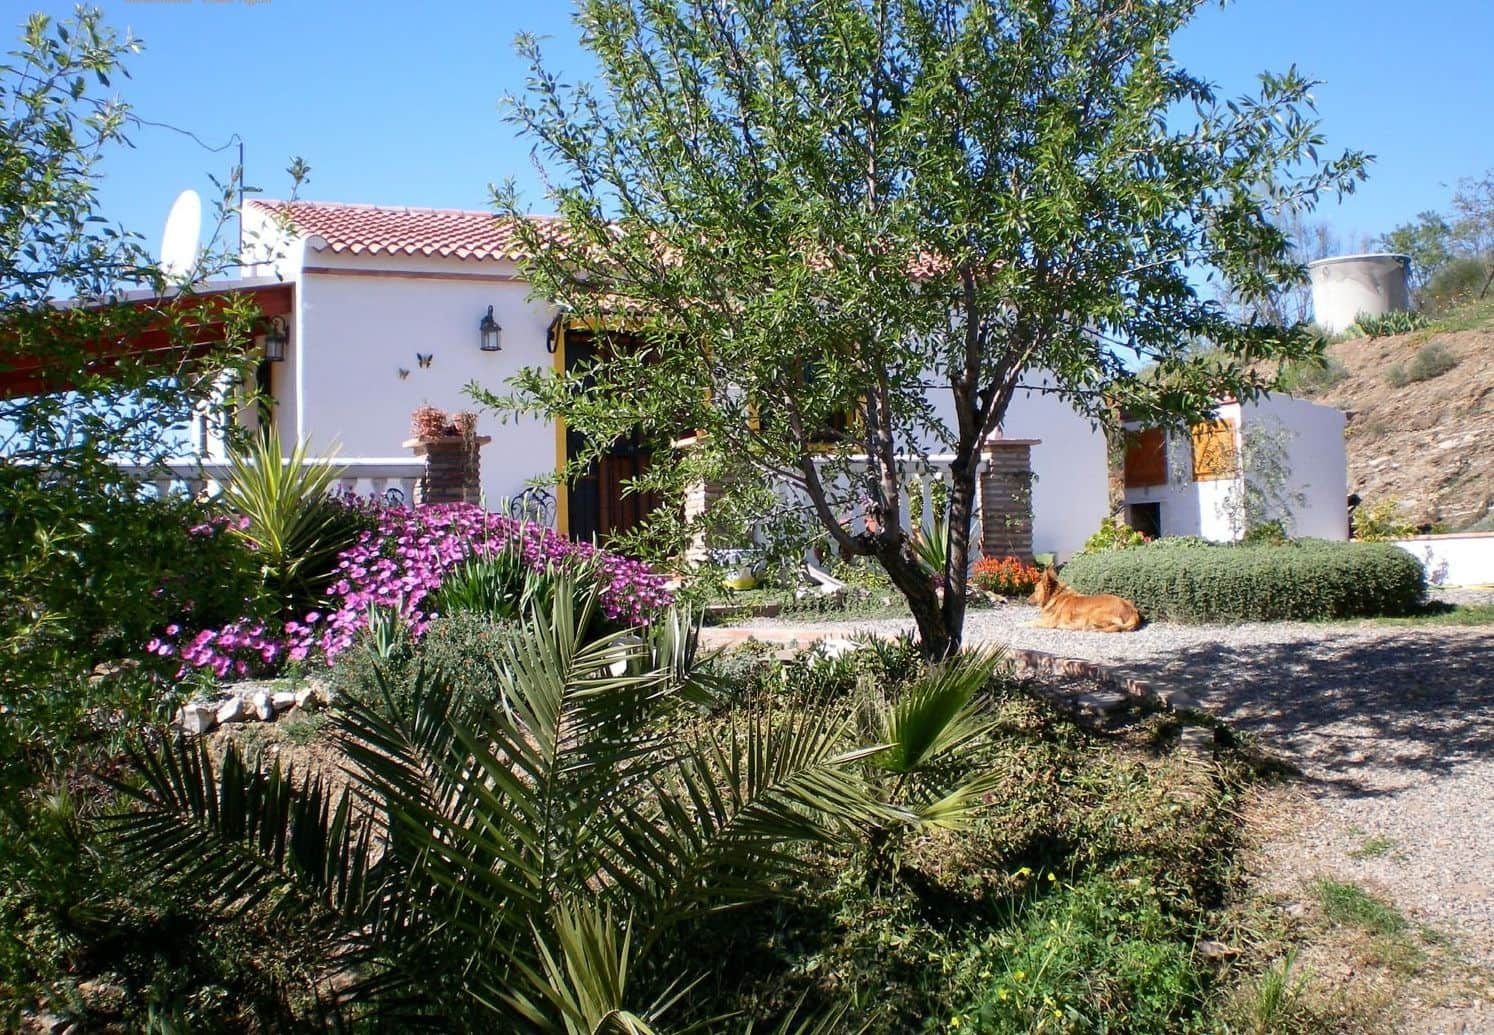 3 bedroom Finca/Country House for sale in Alora with garage - € 148,000 (Ref: 5283759)